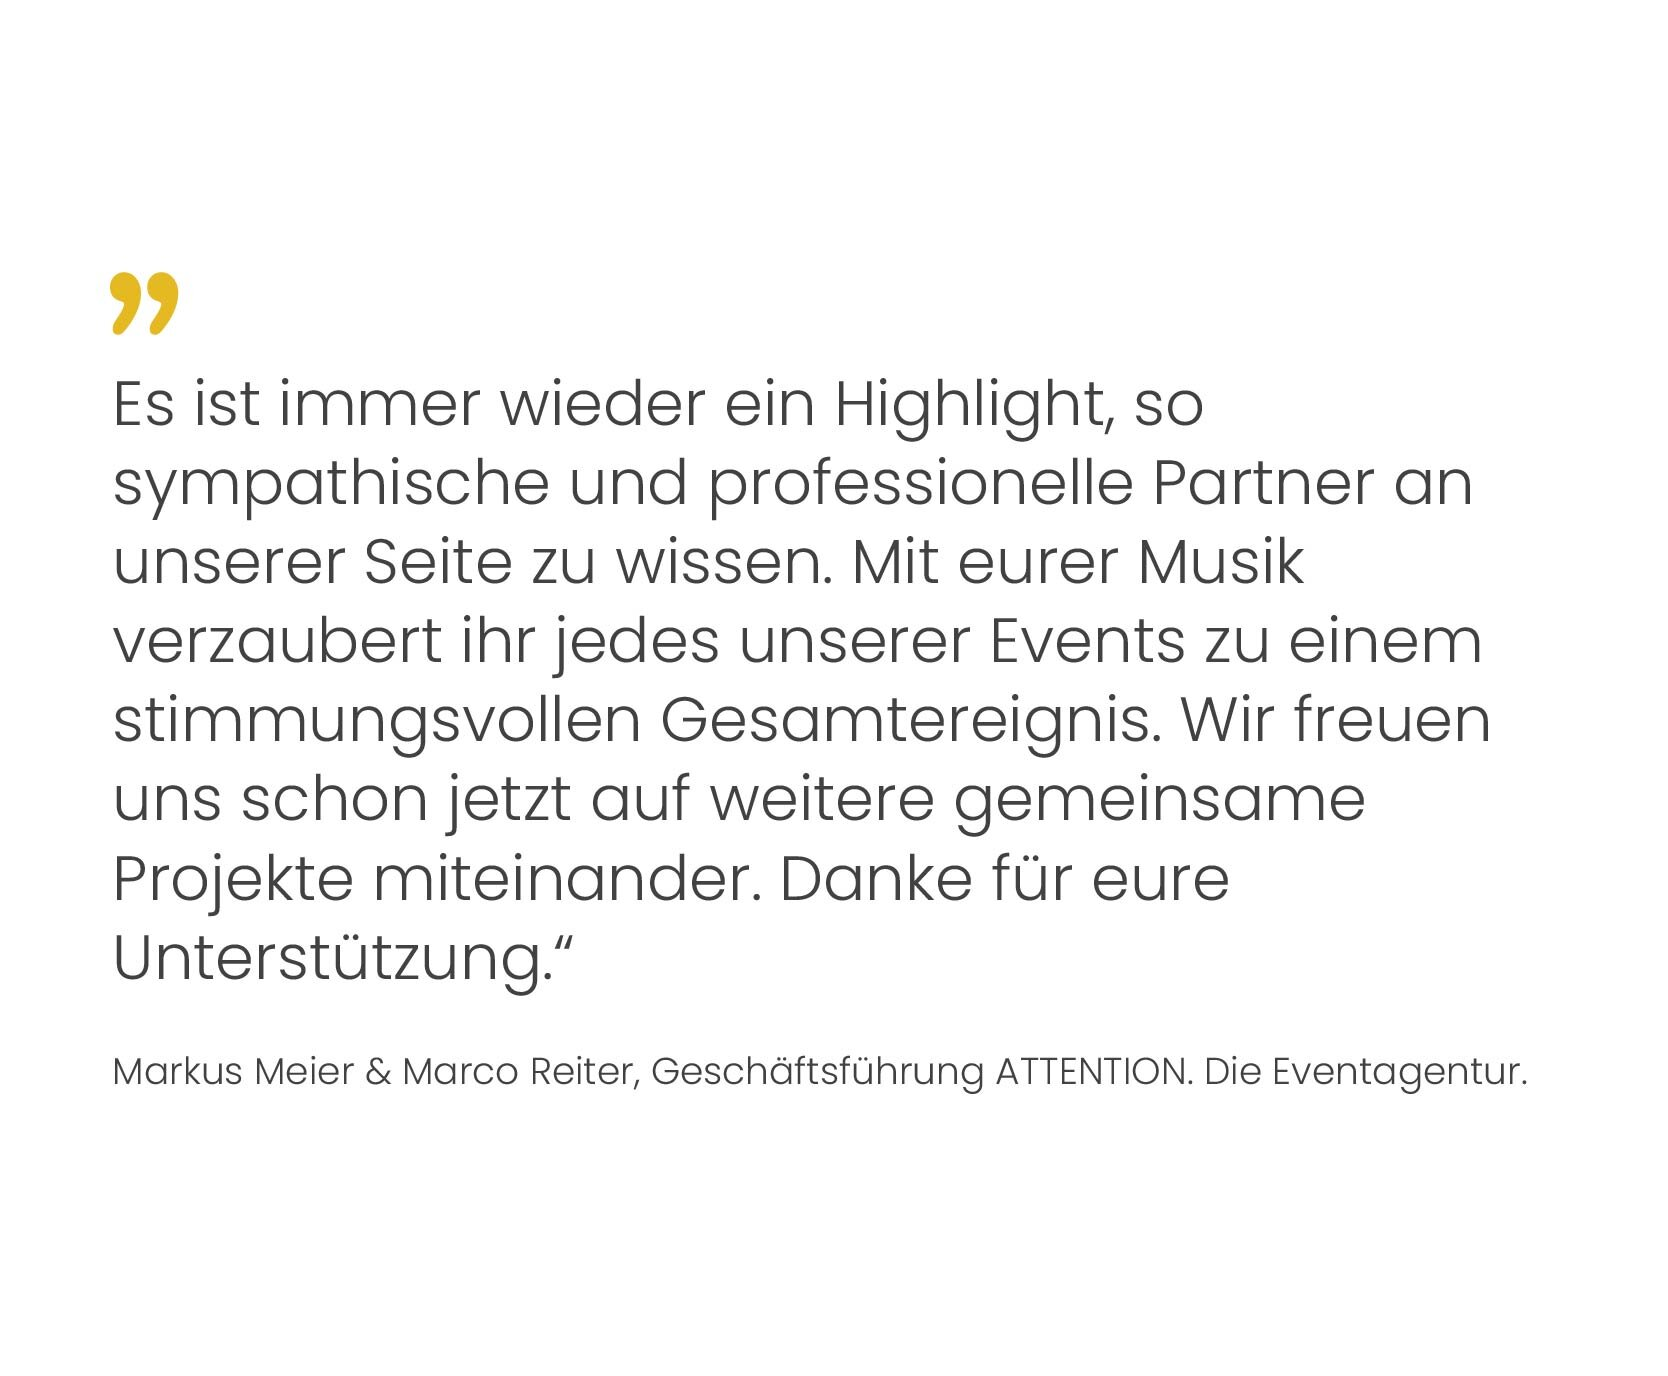 feedback-empfehlung-attention-die-eventagentur.jpg